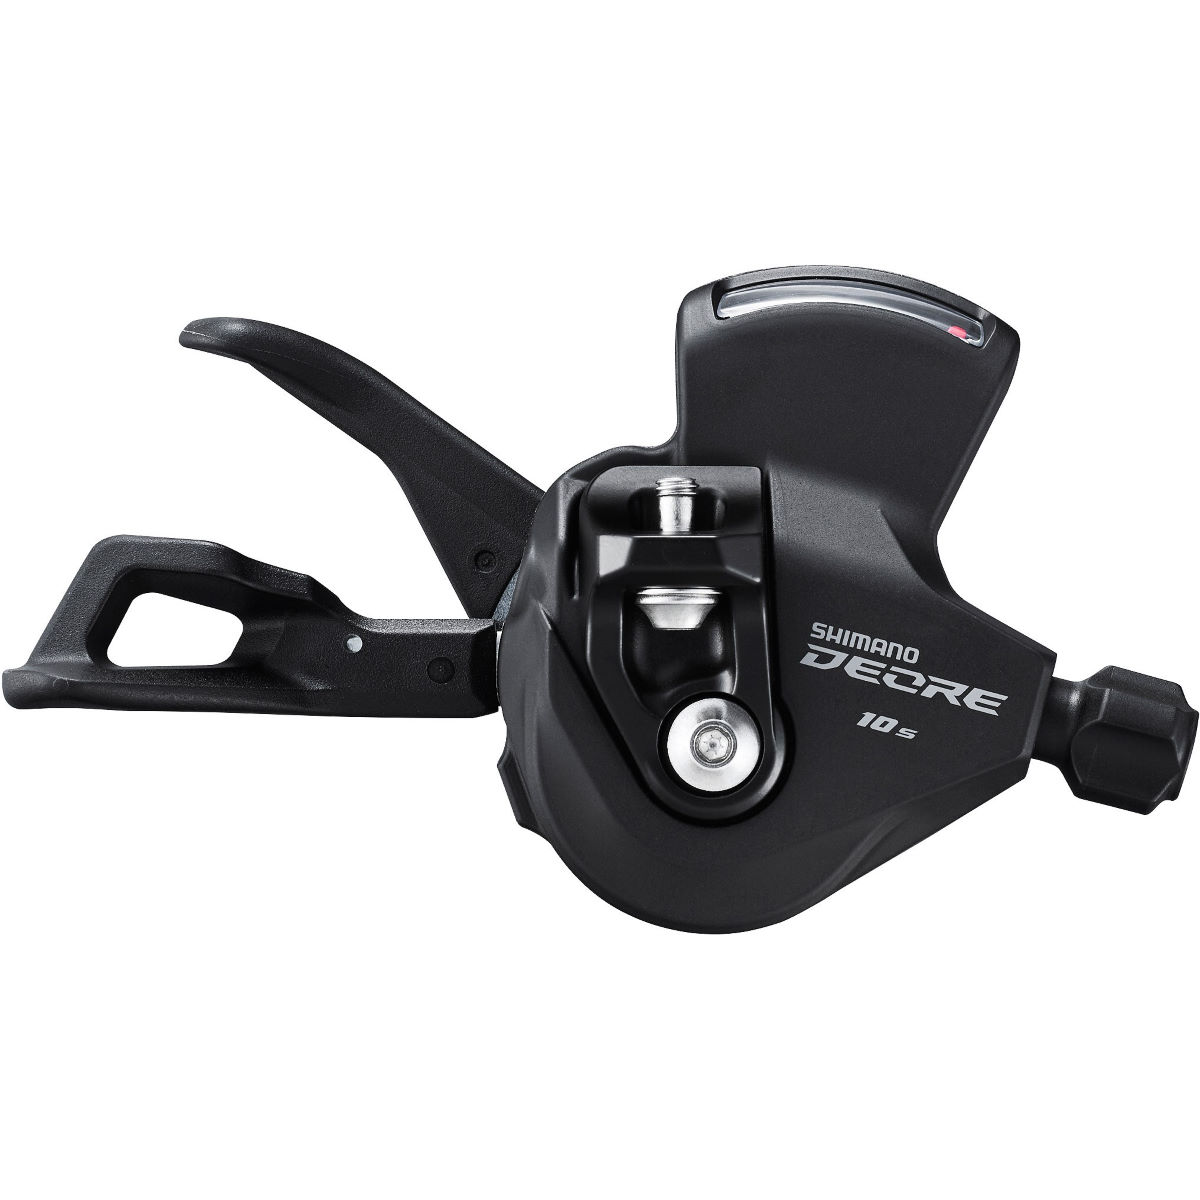 Shimano M4100 Deore 10 Speed Rear Shifter - Manetas de cambio